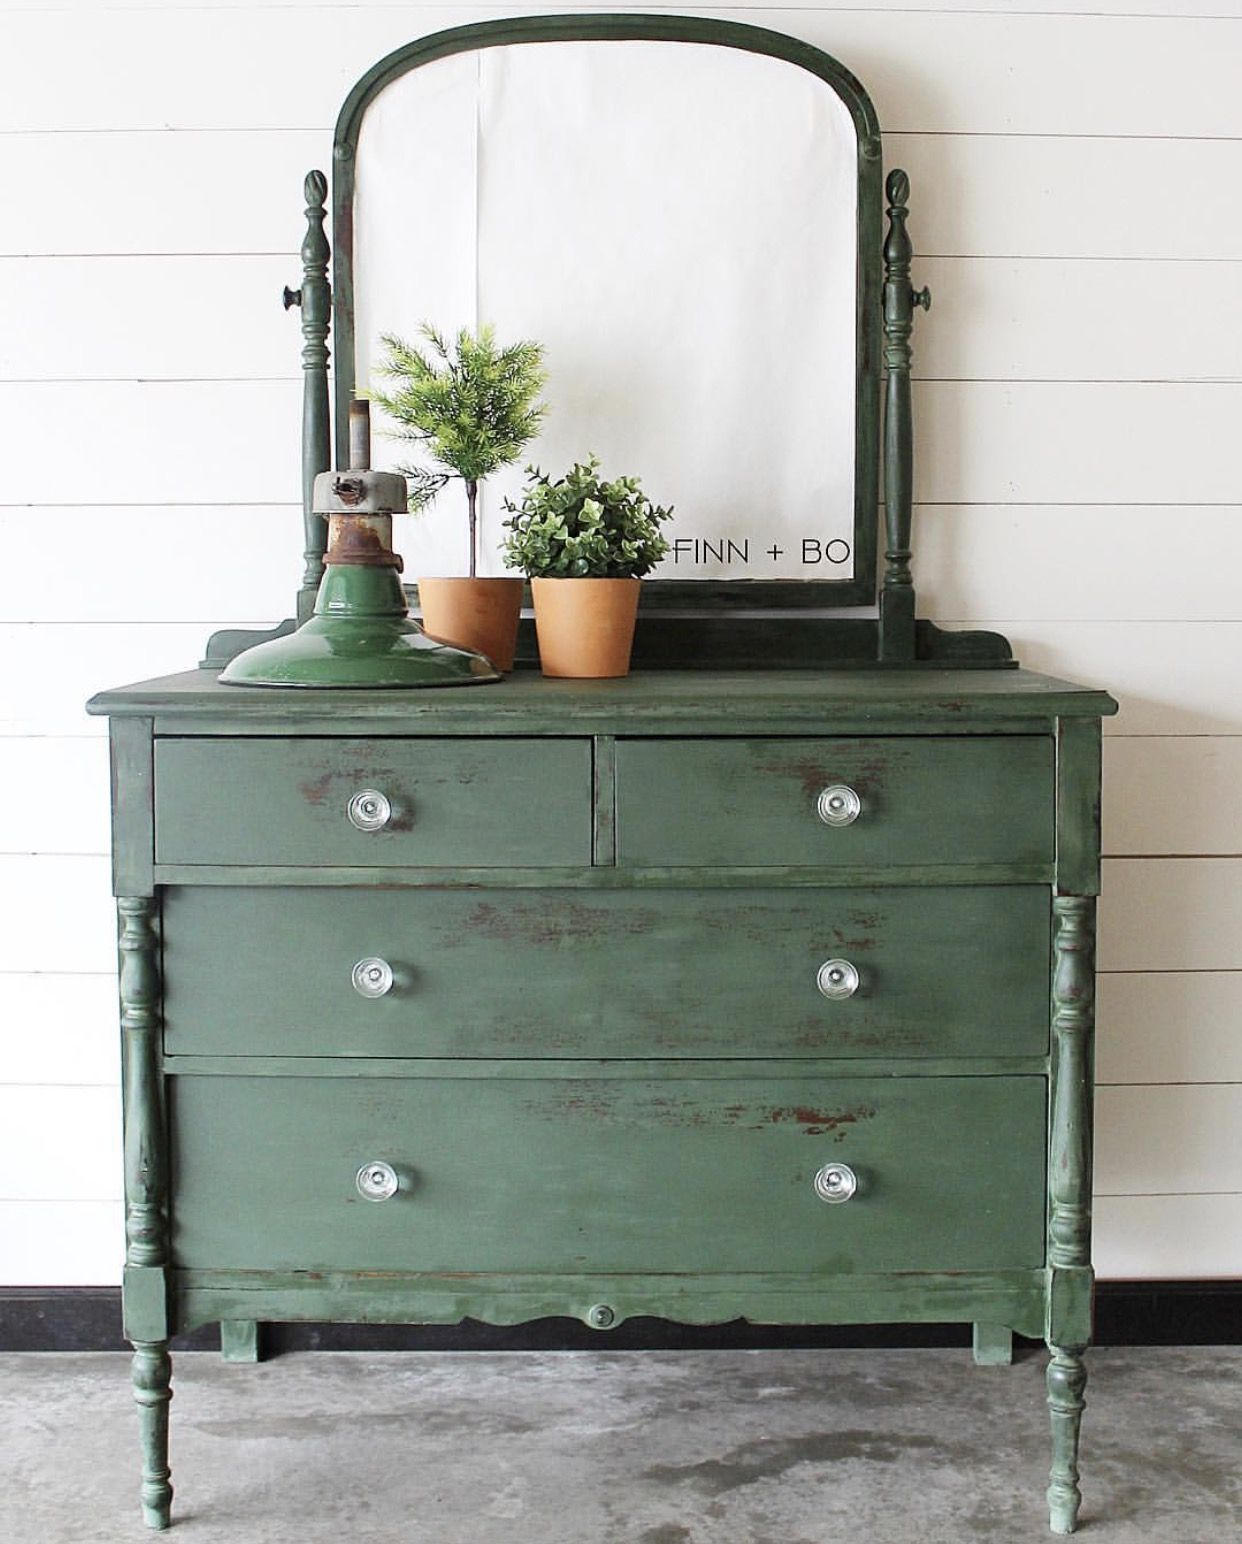 Boho Farmhouse Staging And Design Green Painted Furniture Green Dresser Decor